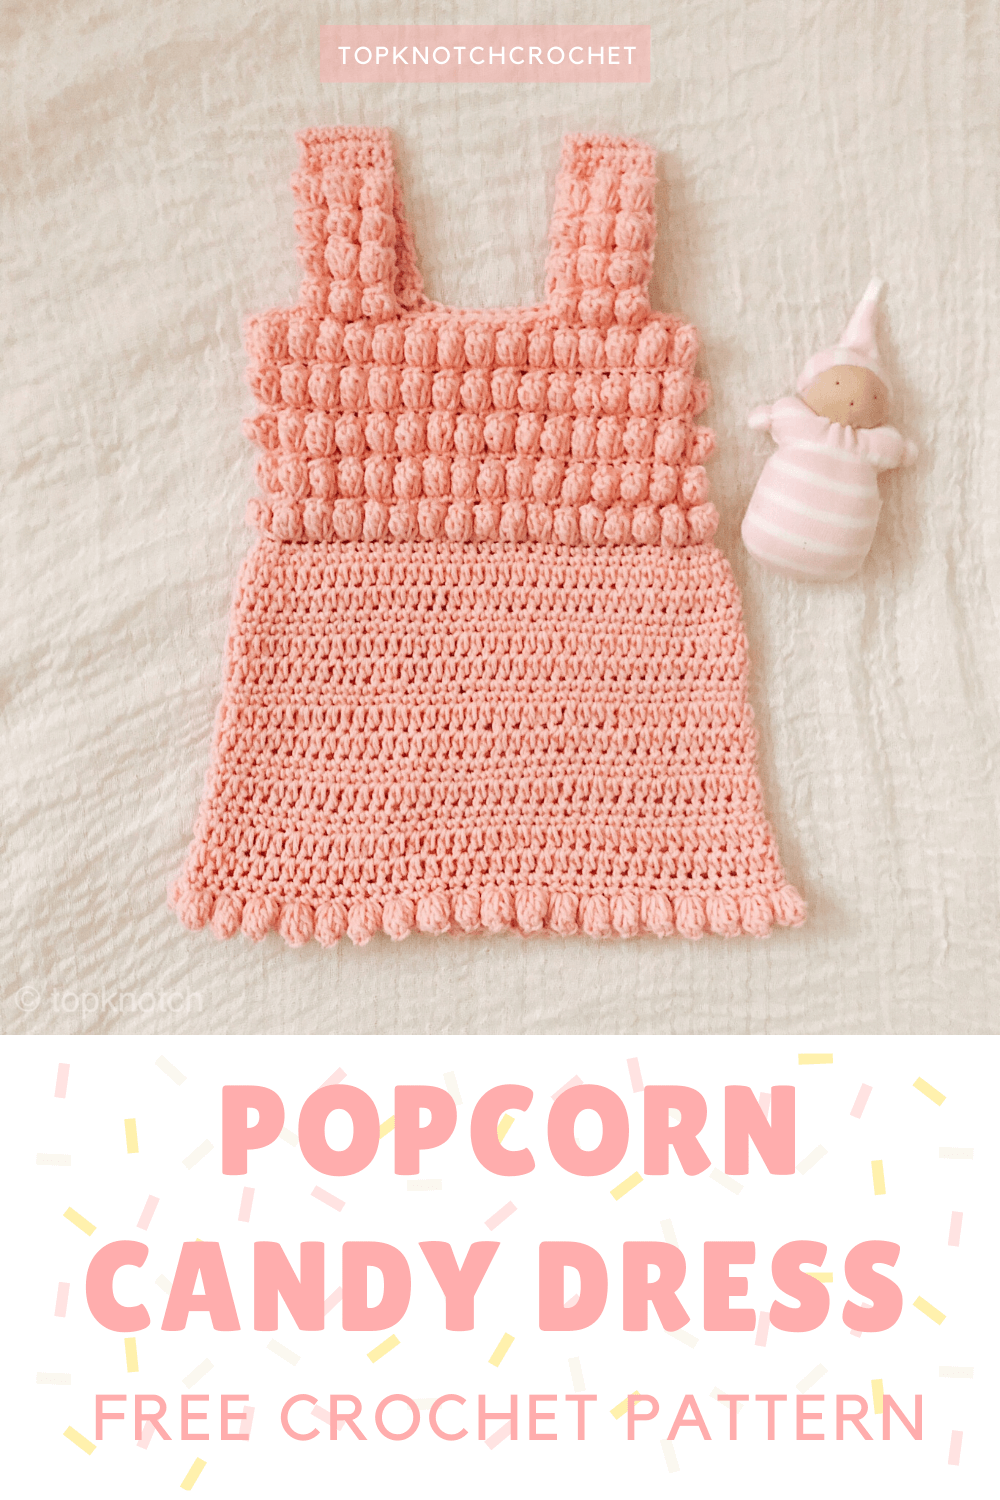 Popcorn Candy Free Crochet Dress Pattern.